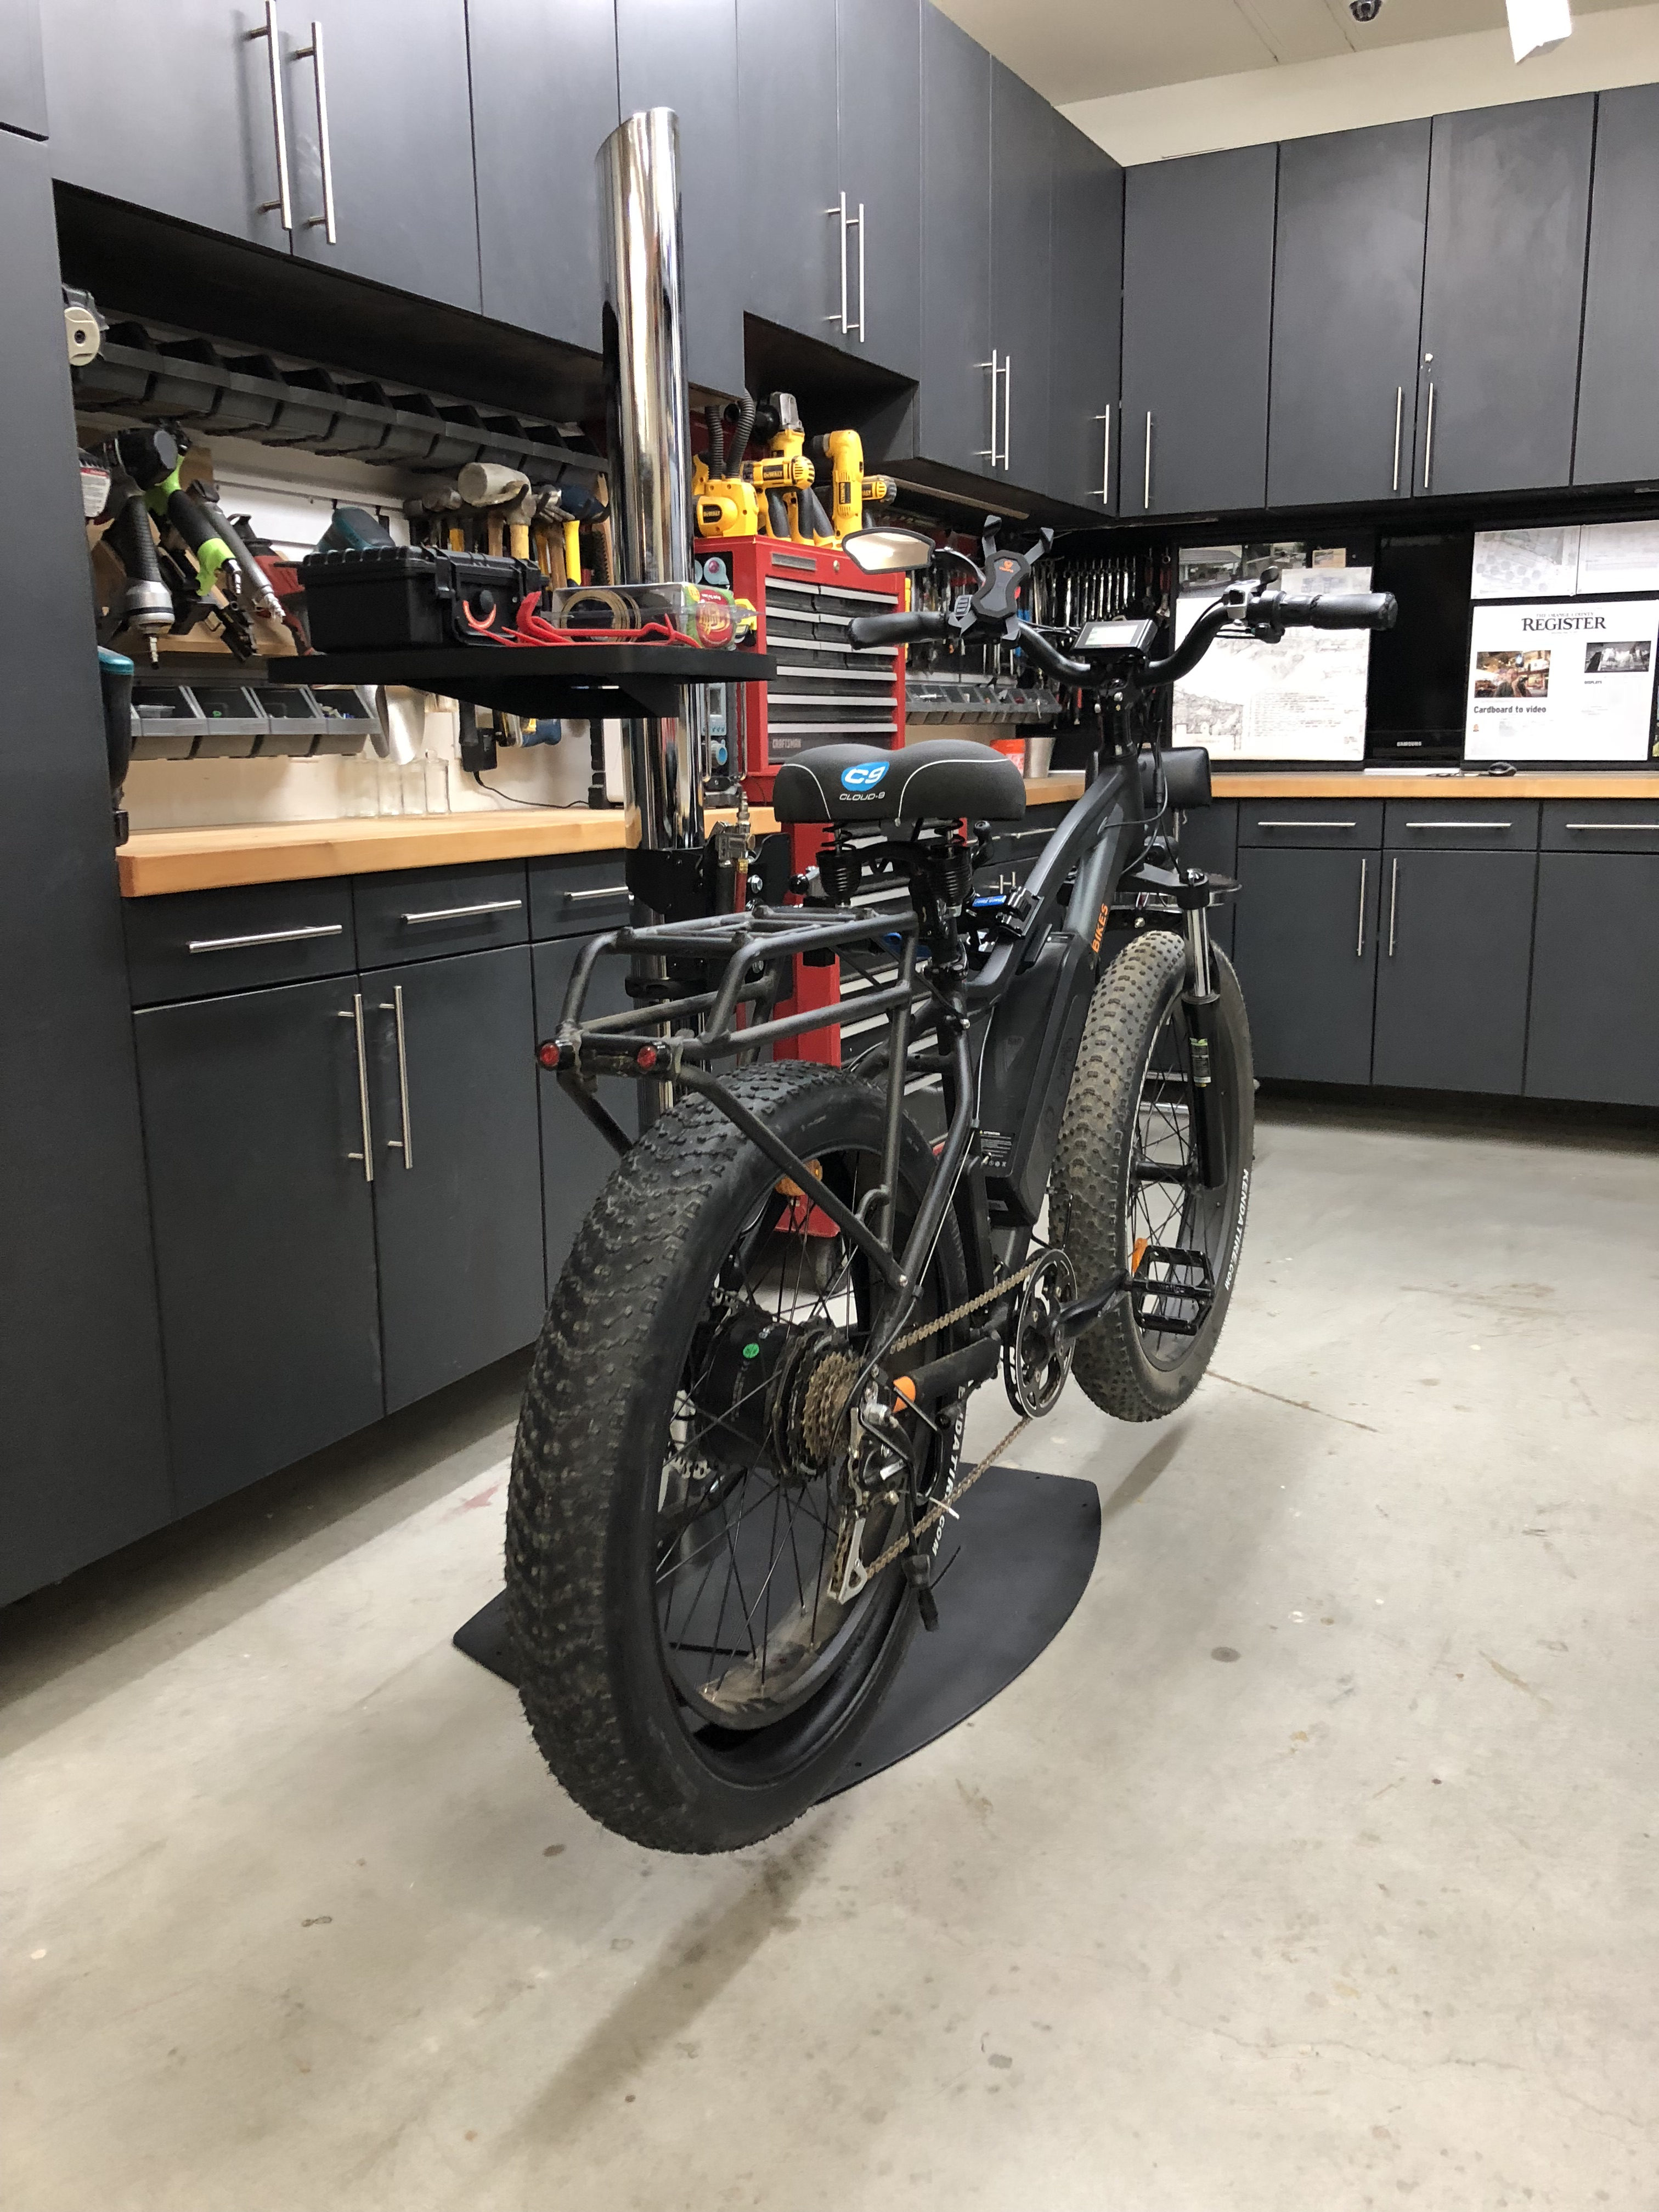 Rad Rover Bike Repair Stand Made from a TV Stand | Electric Bike